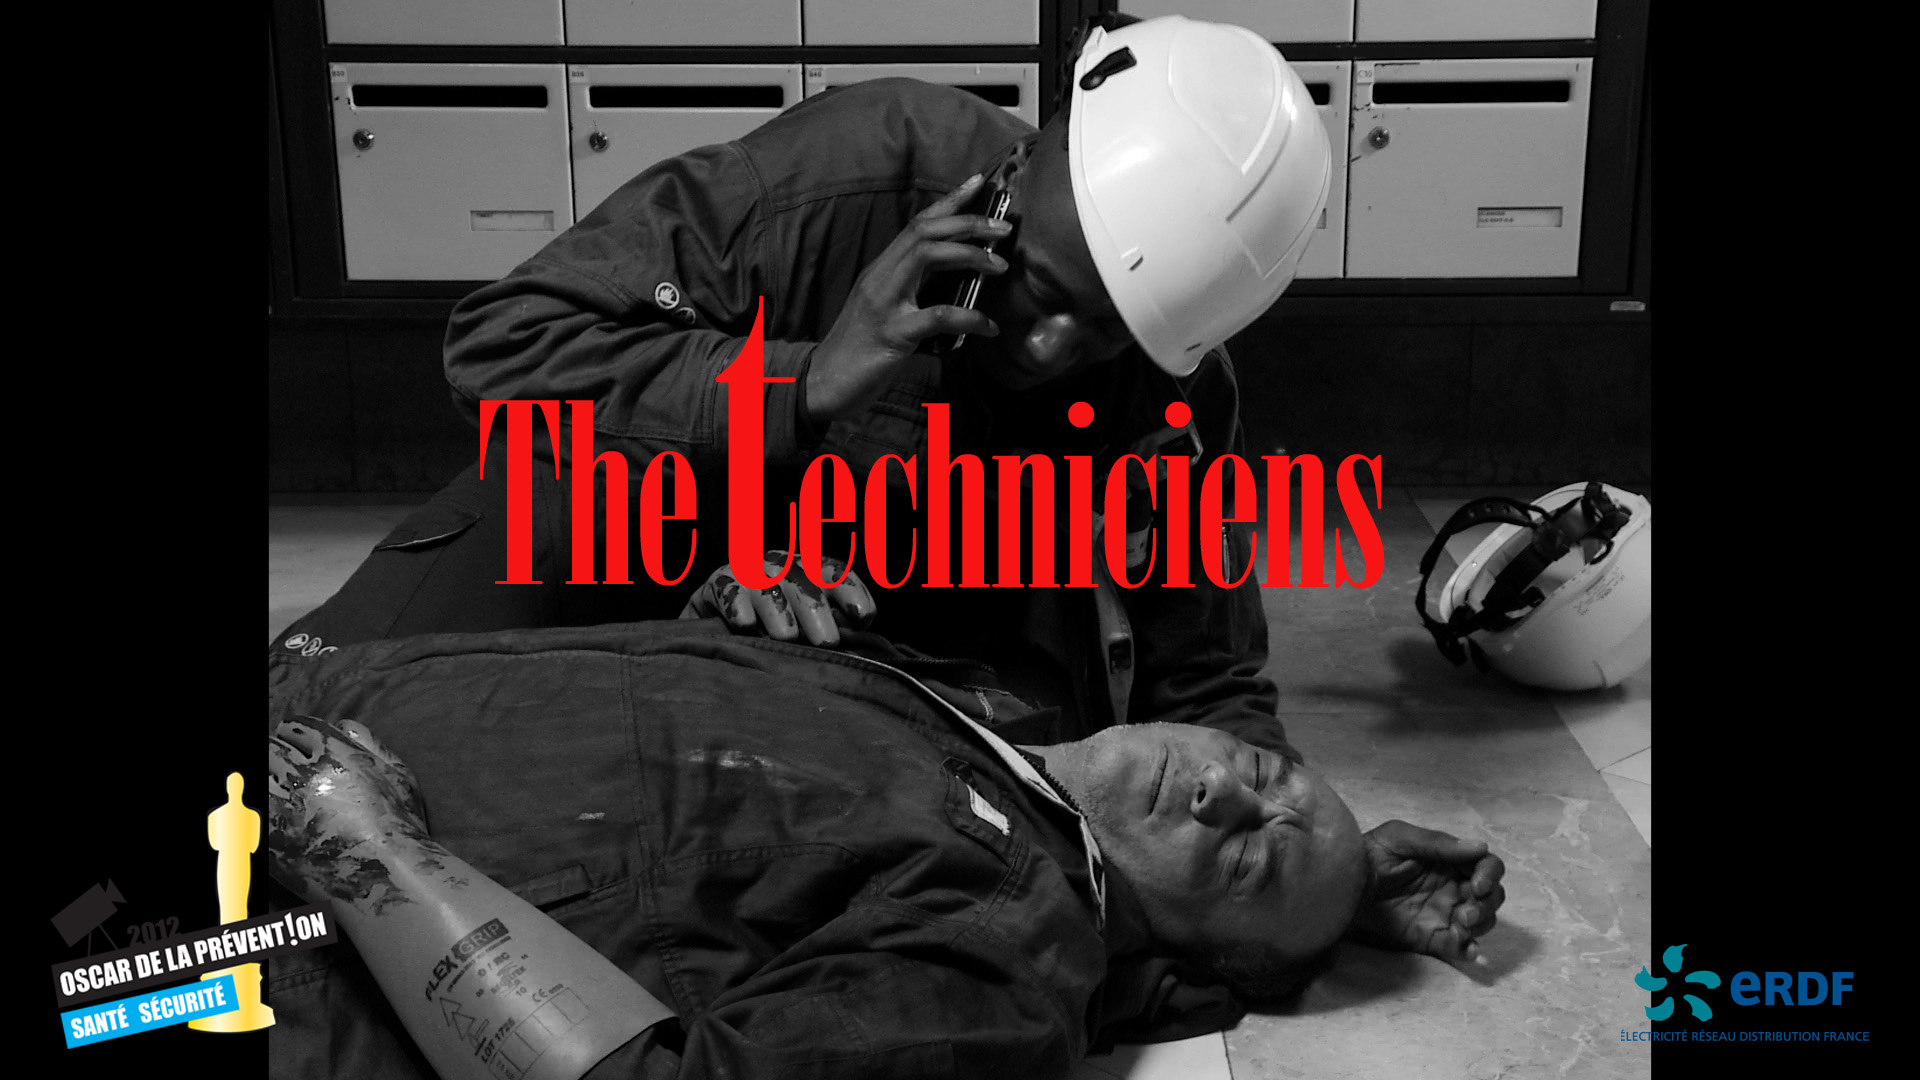 The techniciens 2016